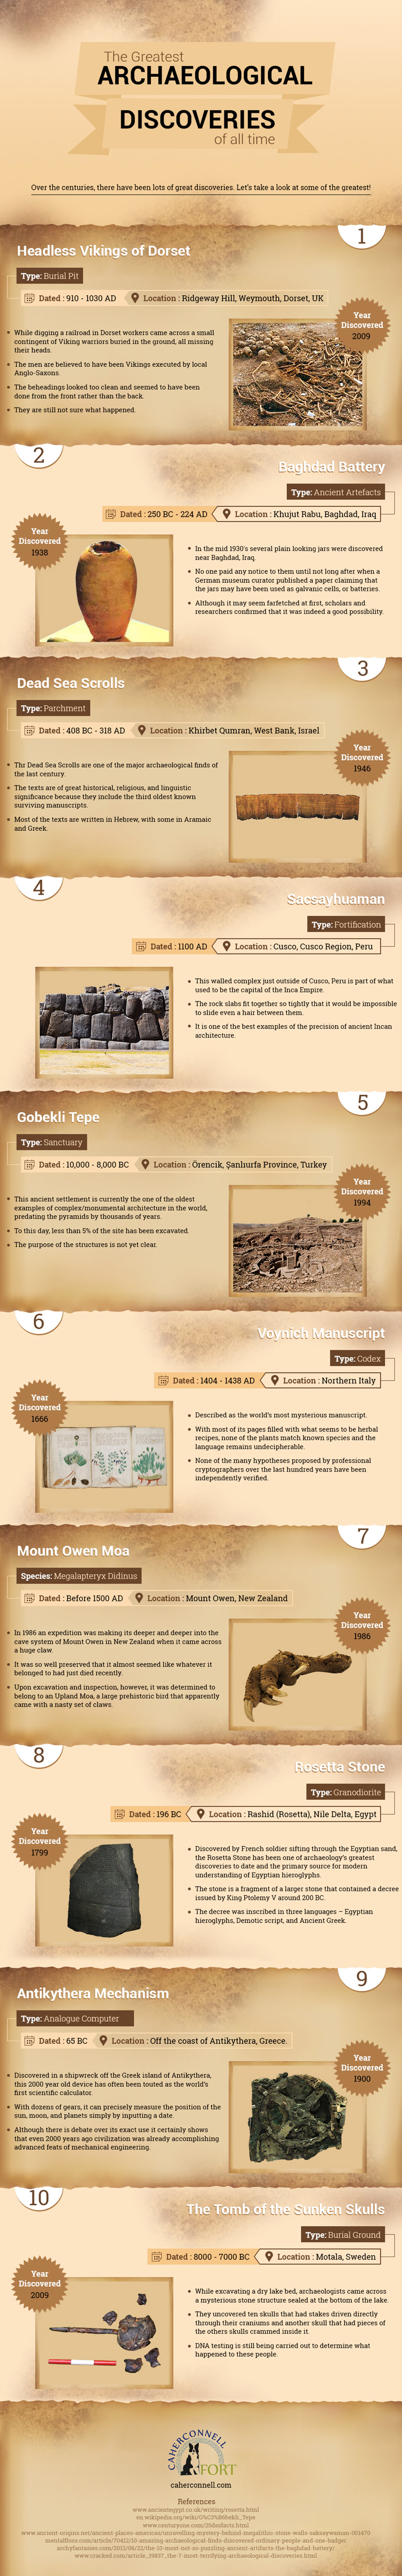 Greatest Archaeological Discoveries Of All Time - History Infographic